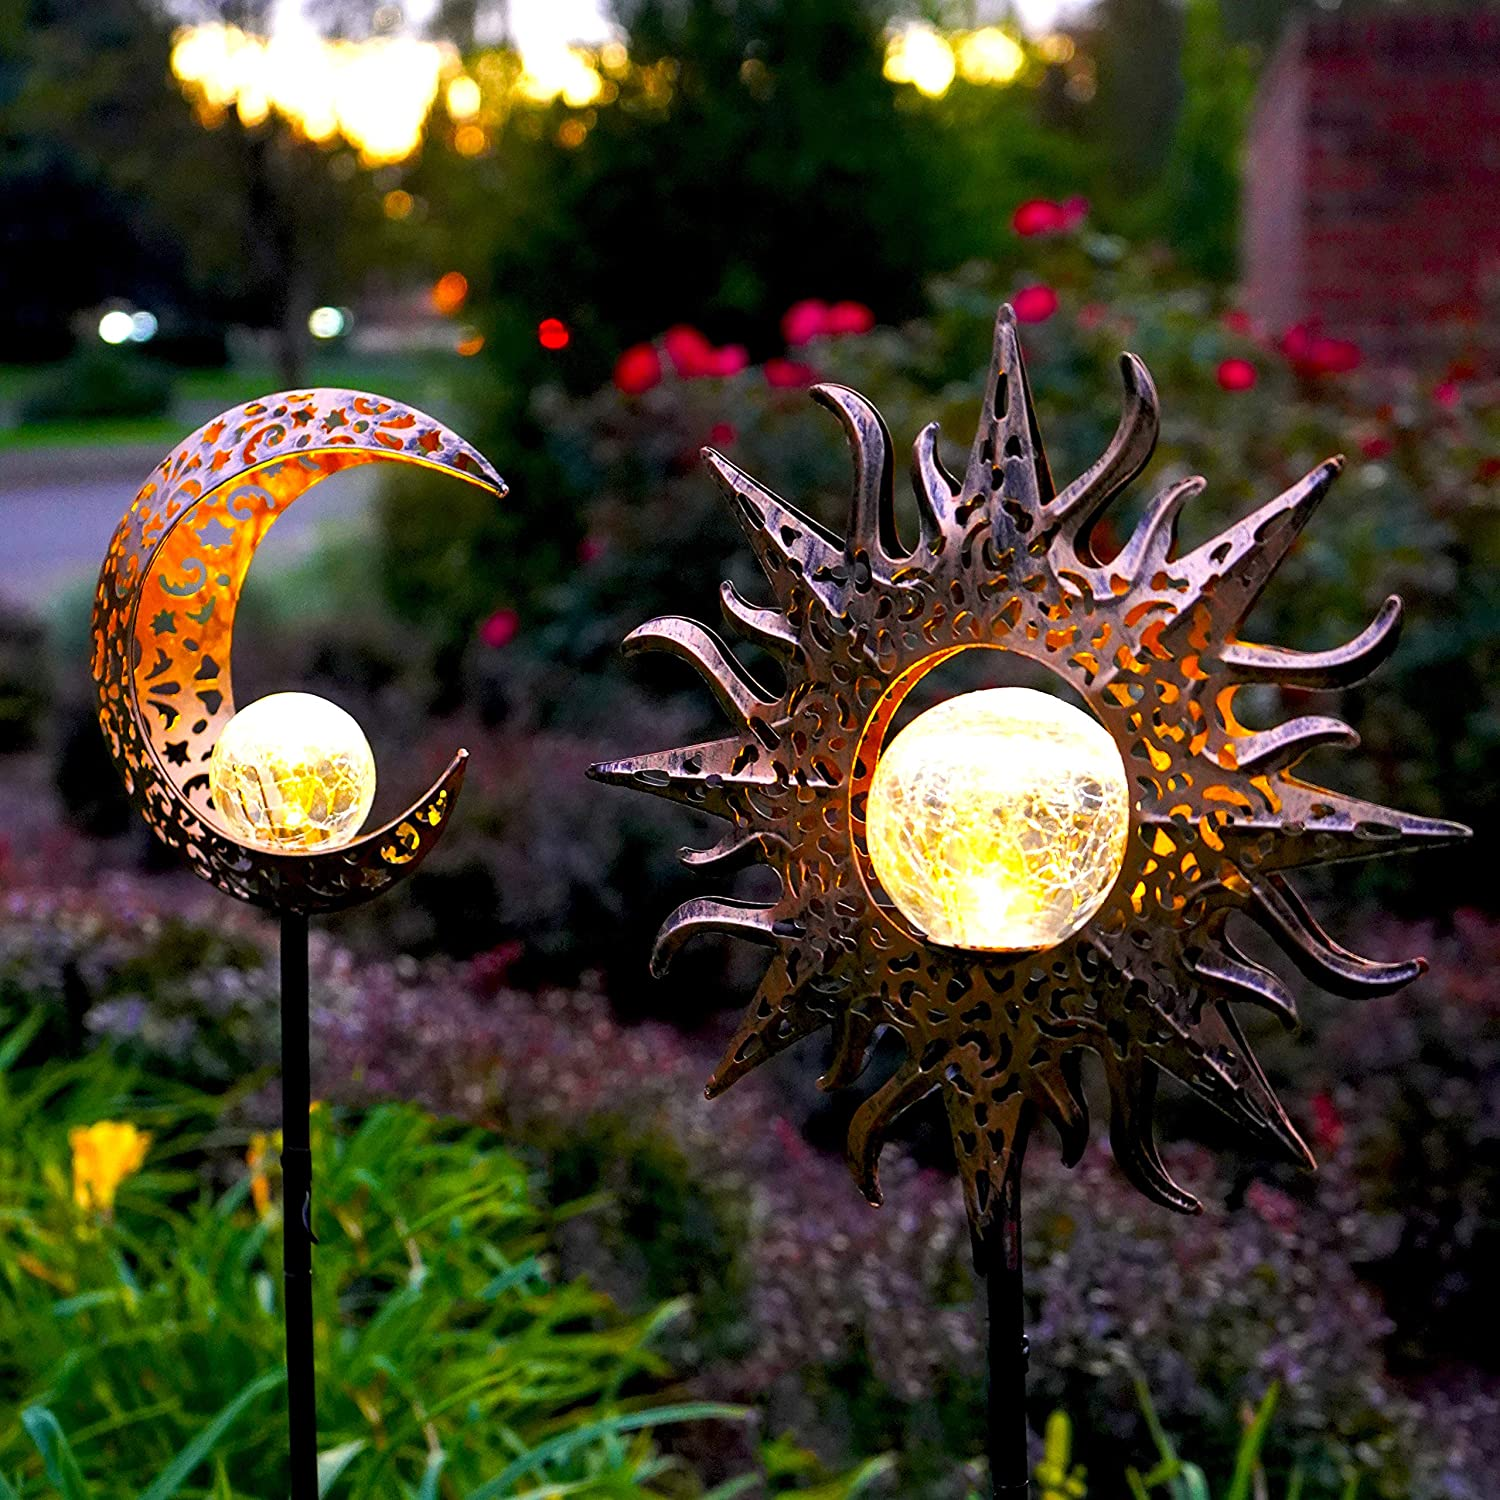 2 Pack-Upgraded 2021 Solar Lights Sun & Moon Decor-Waterproof, Iron, Decorative Stake Beautiful Crackle Globe for Front Yard, Backyard, Garden, Patio or Pool Deck Lighting